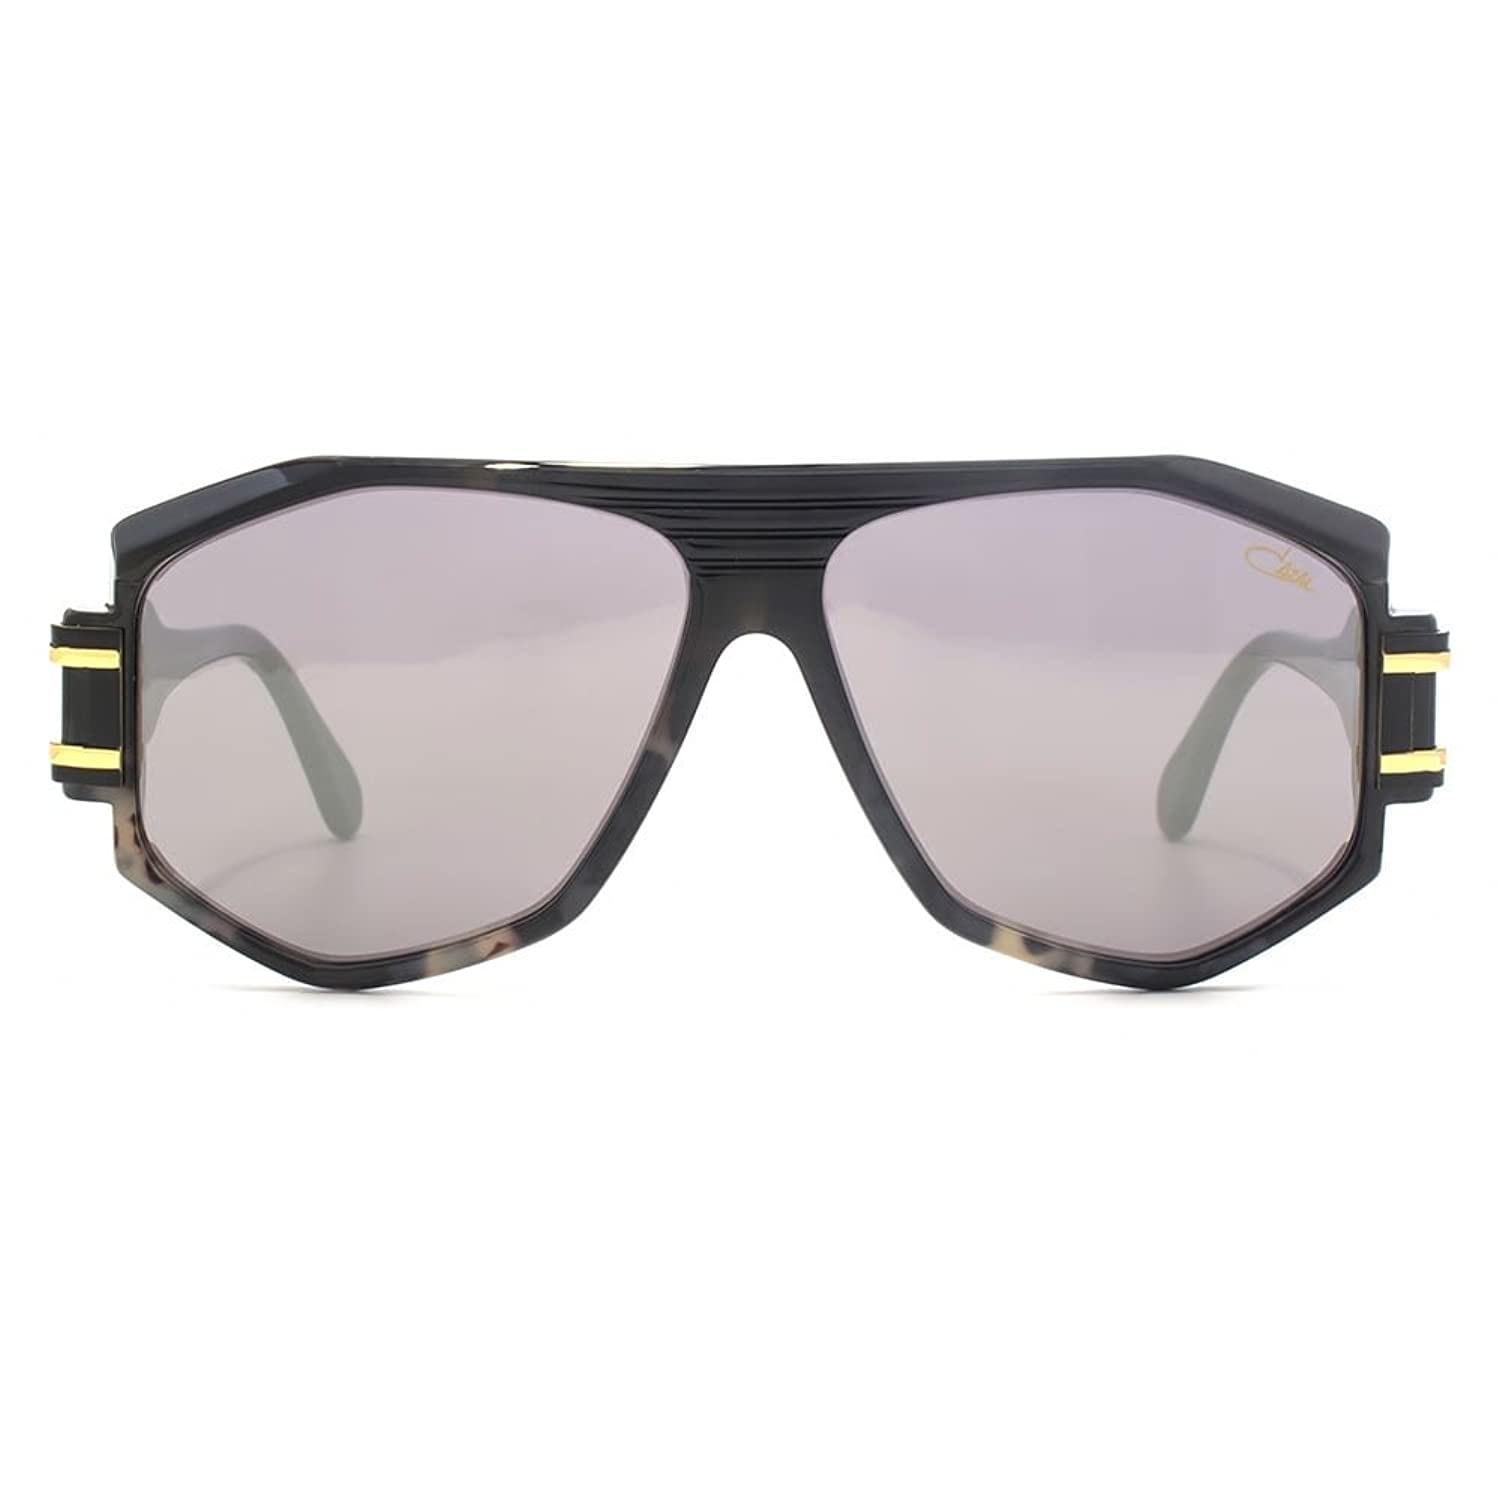 Cazal Legenden 163 Pilotenbrille in schwarz Havanna 163/321 093 59 59 Grey Flash Mirror cE9hXbv